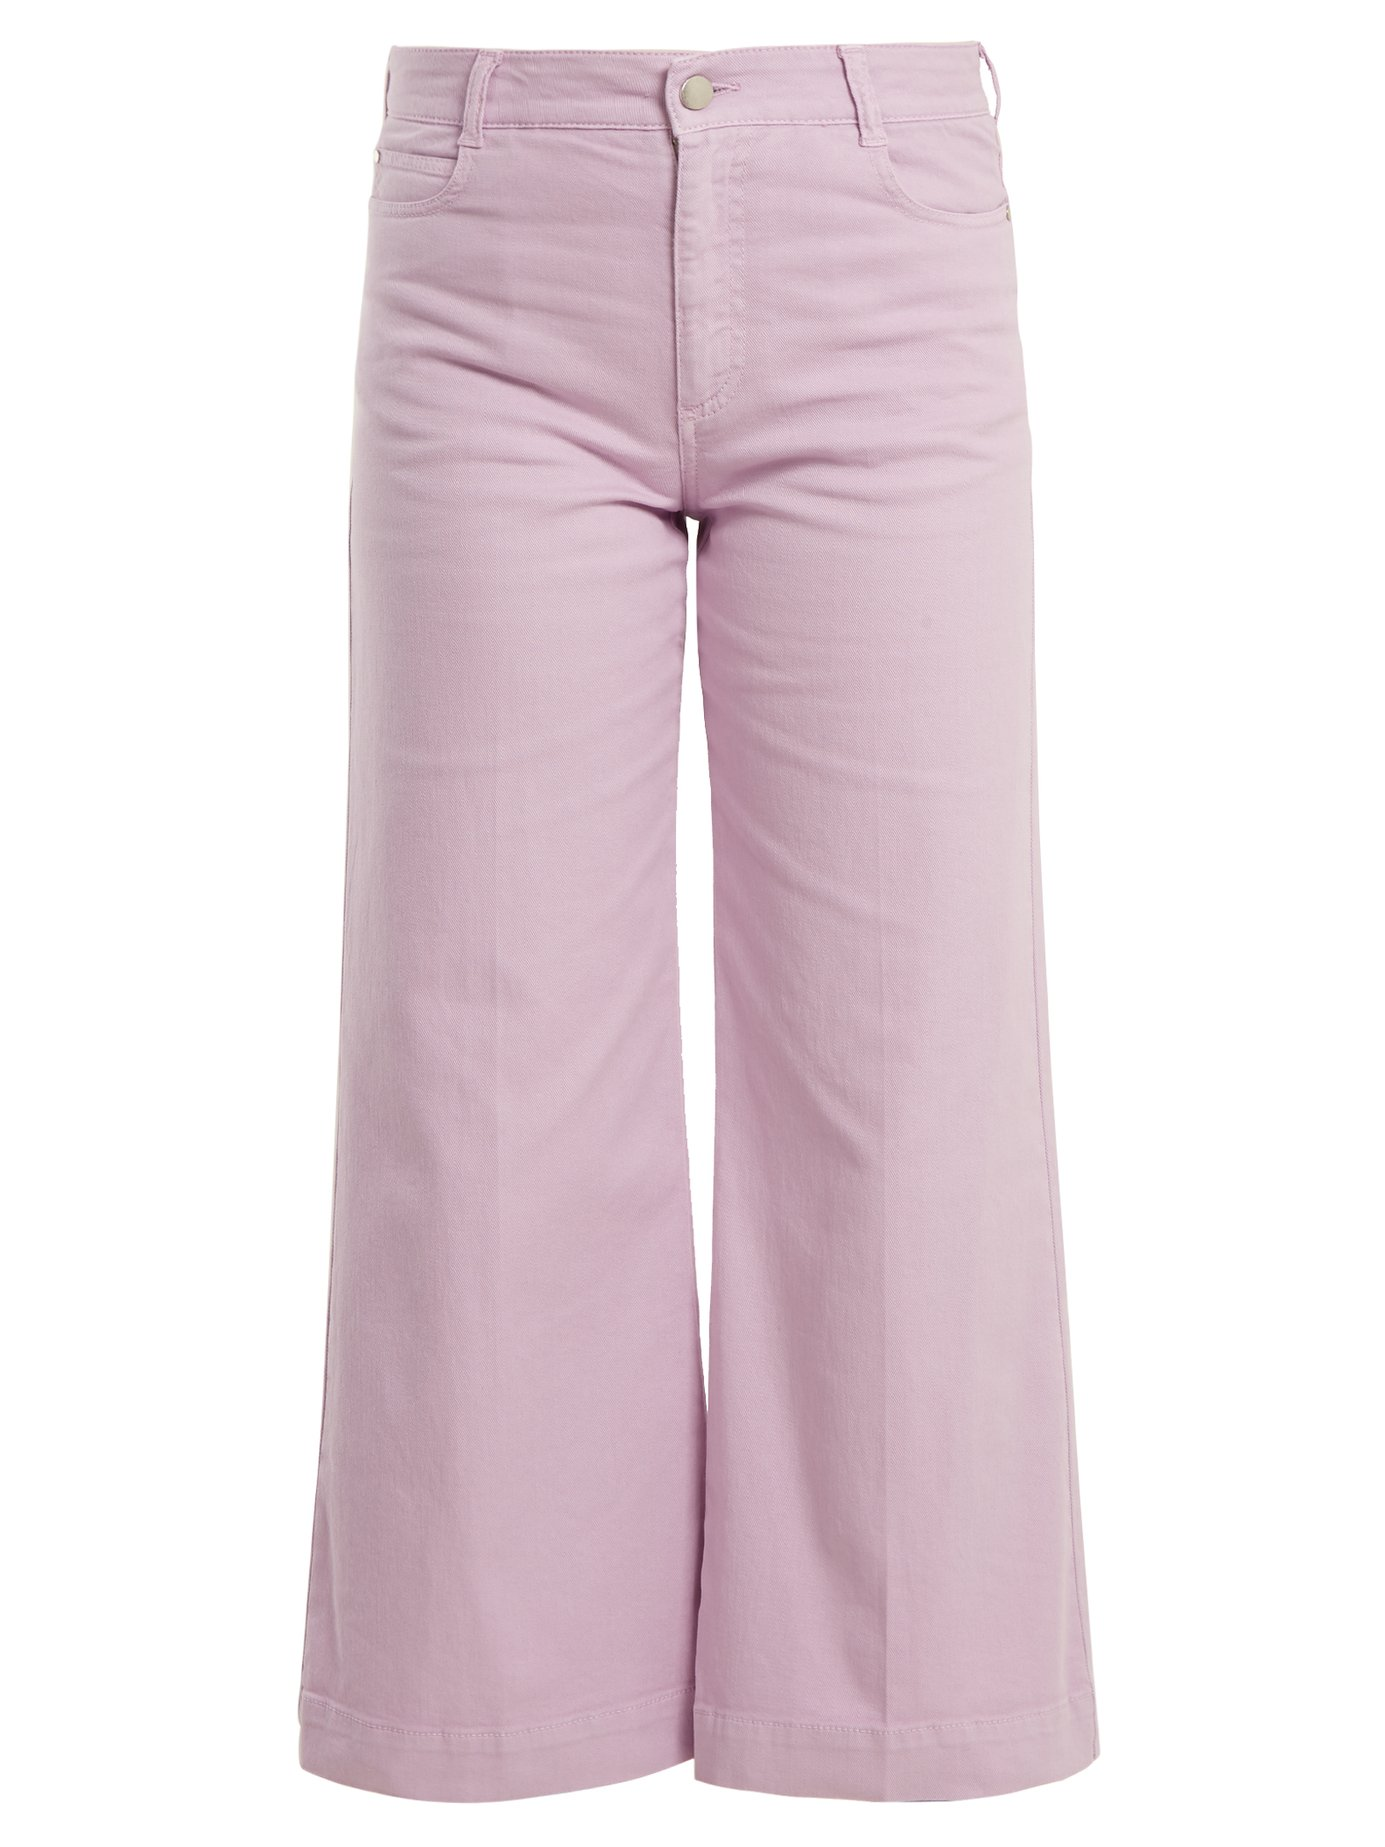 - Stella McCartney / Wide-Leg Cropped Jeans